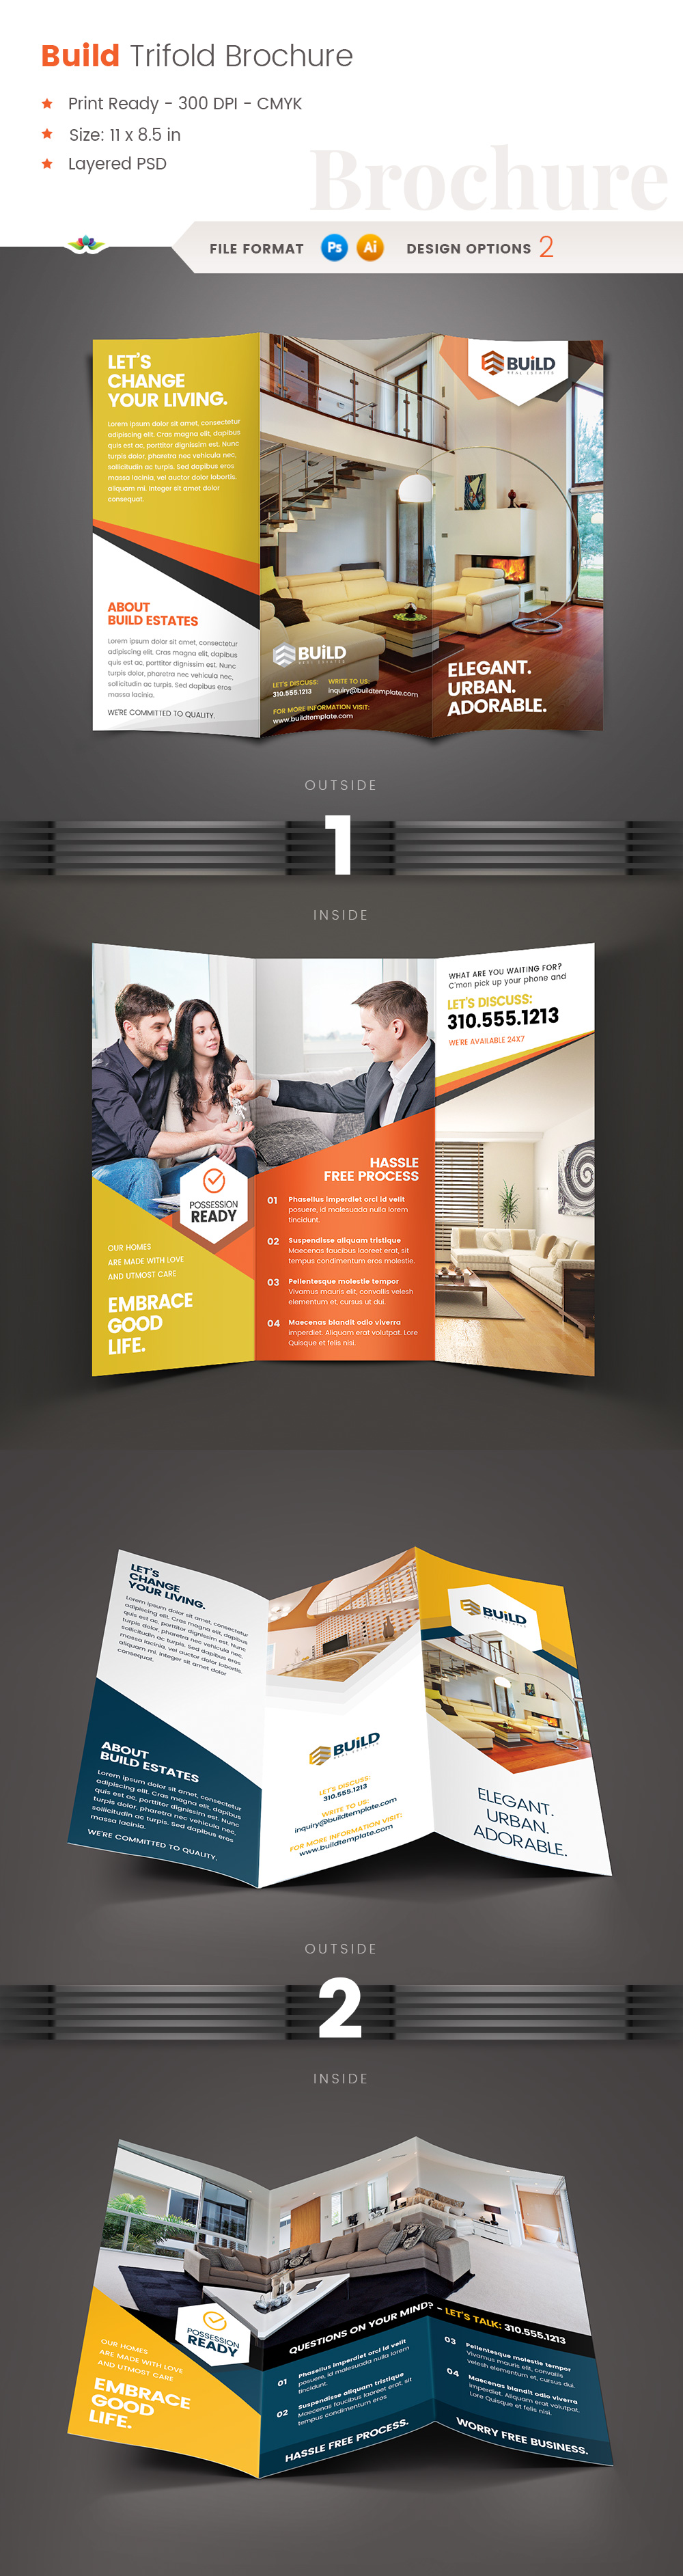 Build Real Estate trifold brochure by Saptarang